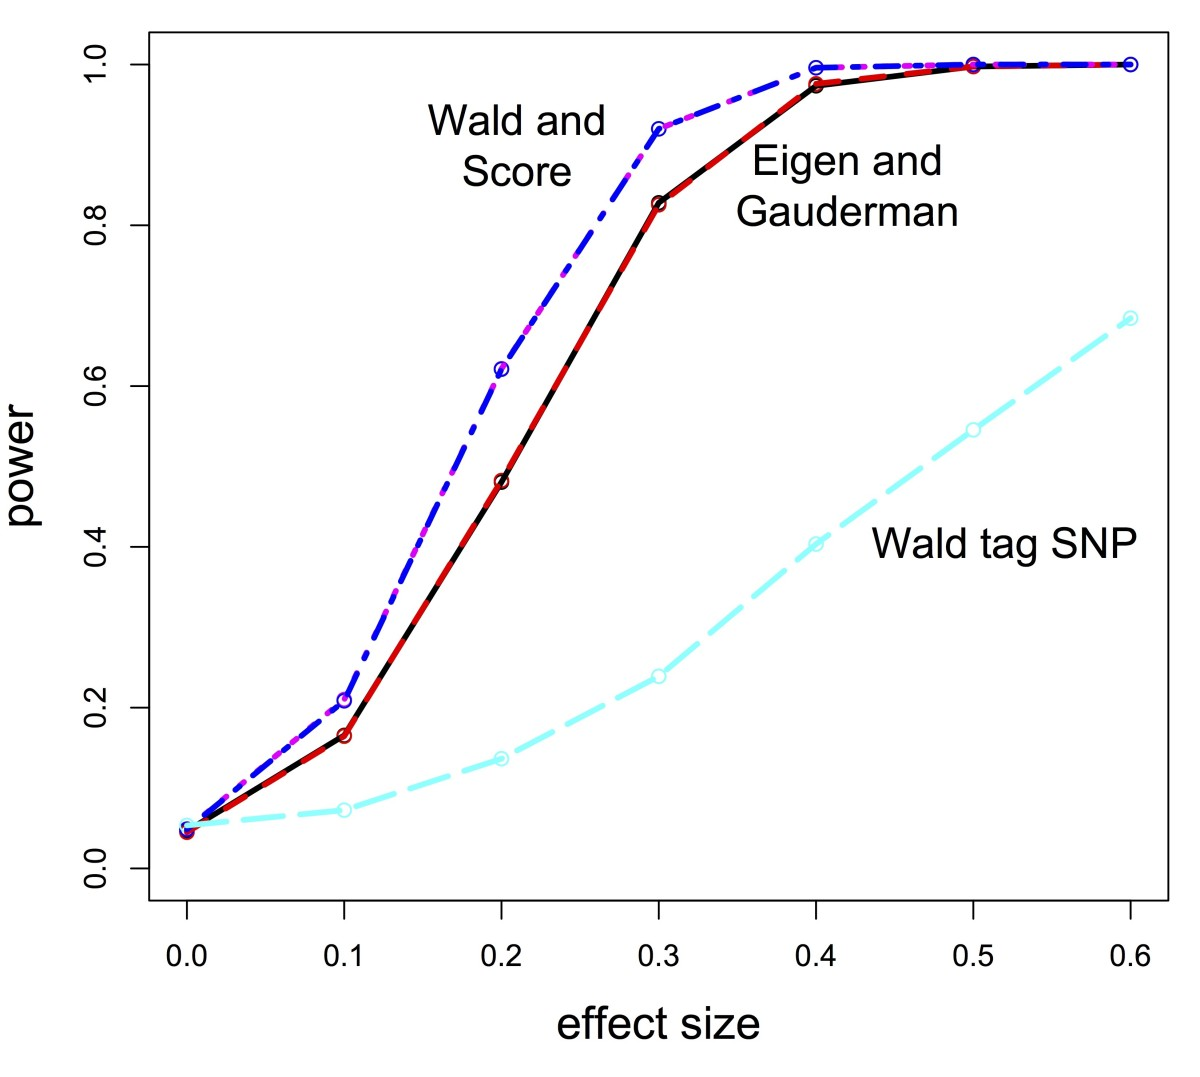 https://static-content.springer.com/image/art%3A10.1186%2F1471-2156-14-108/MediaObjects/12863_2013_Article_1175_Fig8_HTML.jpg